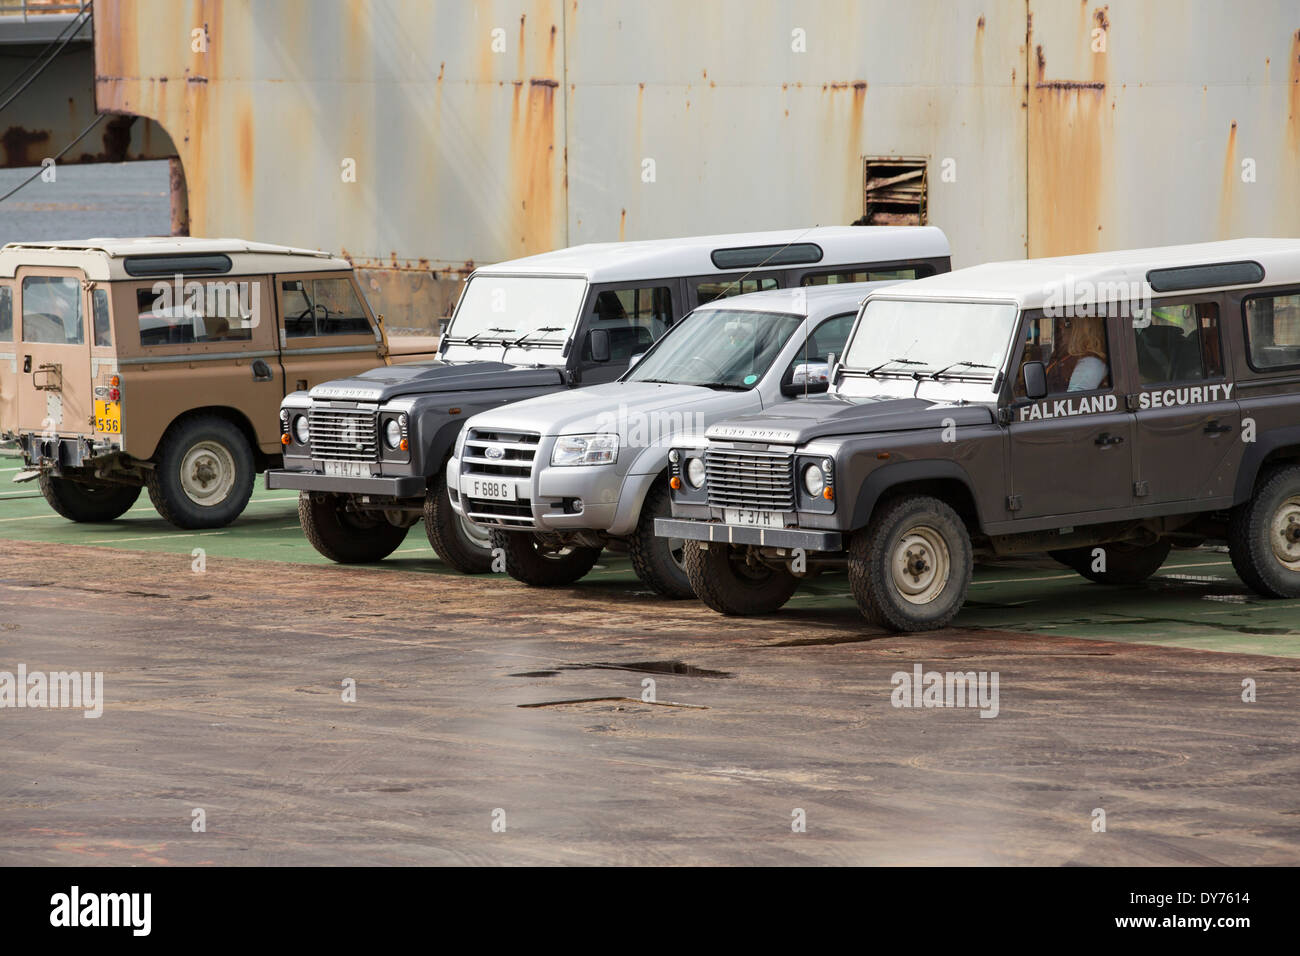 Falklands security vehicles in Port Stanley in the Falkland Islands. Stock Photo